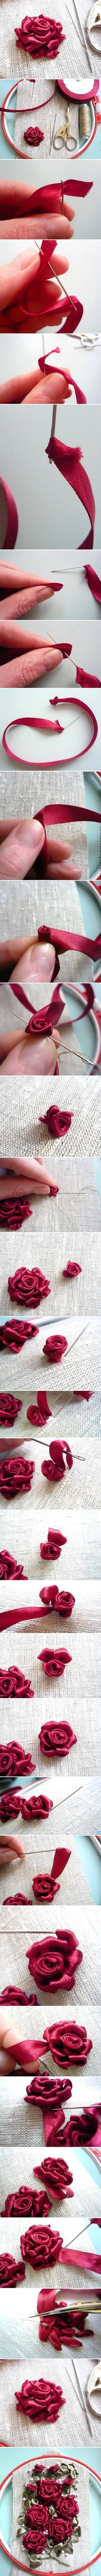 Love silk flower embroidery and crazy quilt embroidery